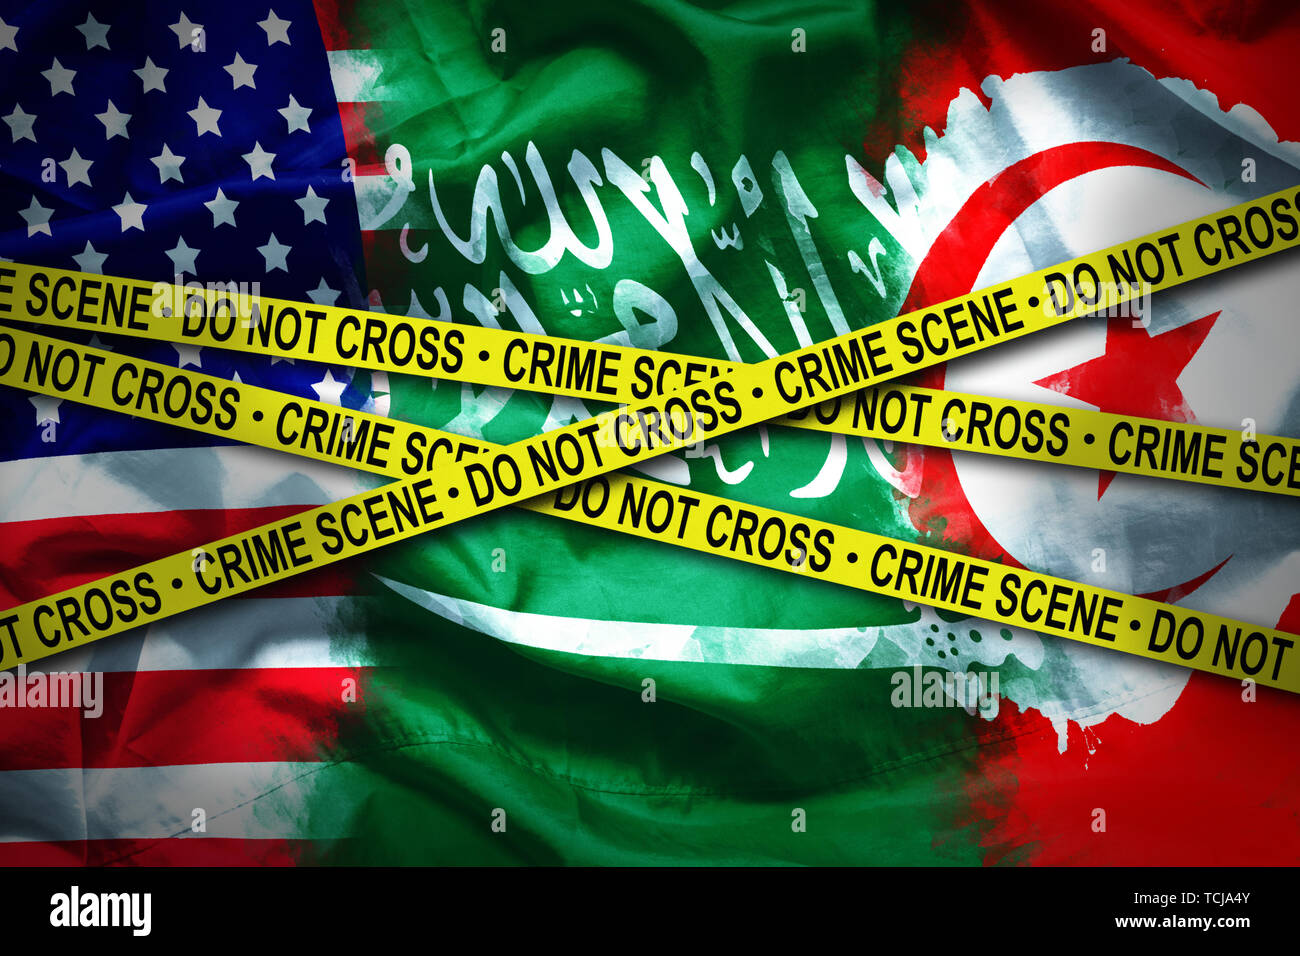 flags for 3 countries connected crime scene. case of murdered Saudi journalist who refuge in United state of america was kill in embassy Saudi Arabia  - Stock Image